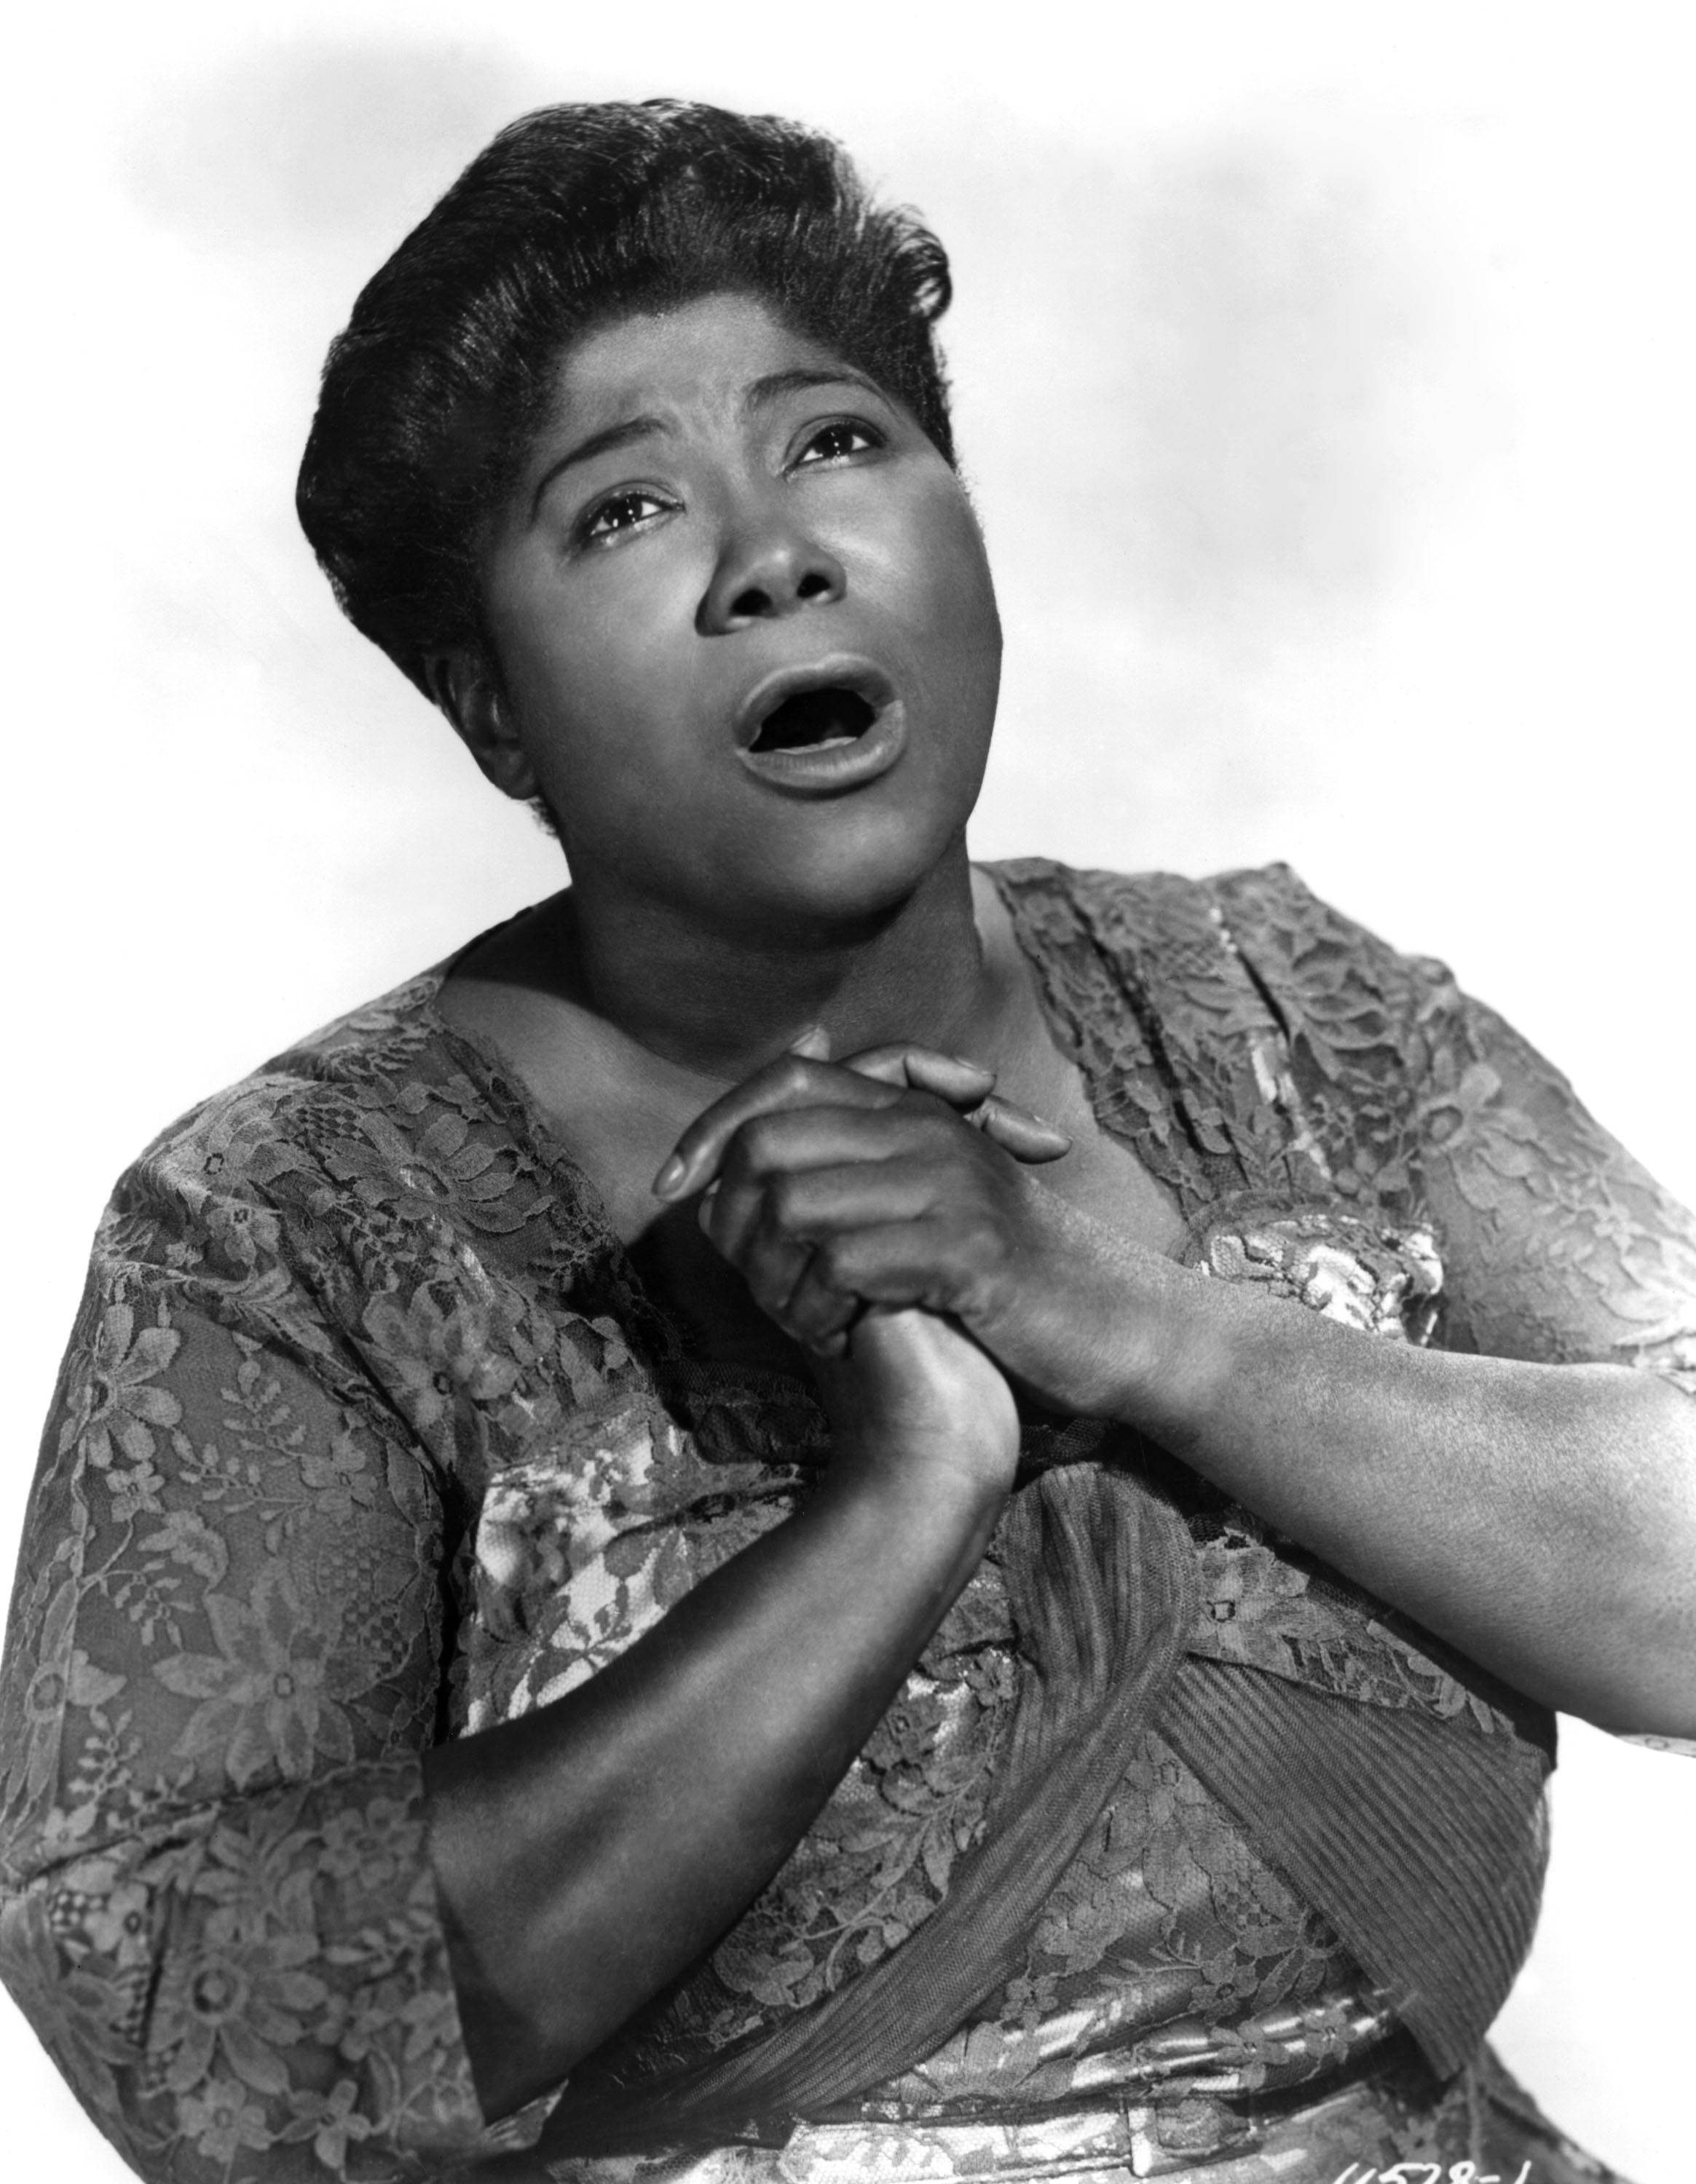 """At King's funeral, his good friend Mahalia Jackson sang ________ . - A) """"Take my Hand, Precious Lord""""B) """"Leaning on His Everlasting Arms""""C) """"Amazing Grace""""(Photo: Michael Ochs Archives/Getty Images)"""